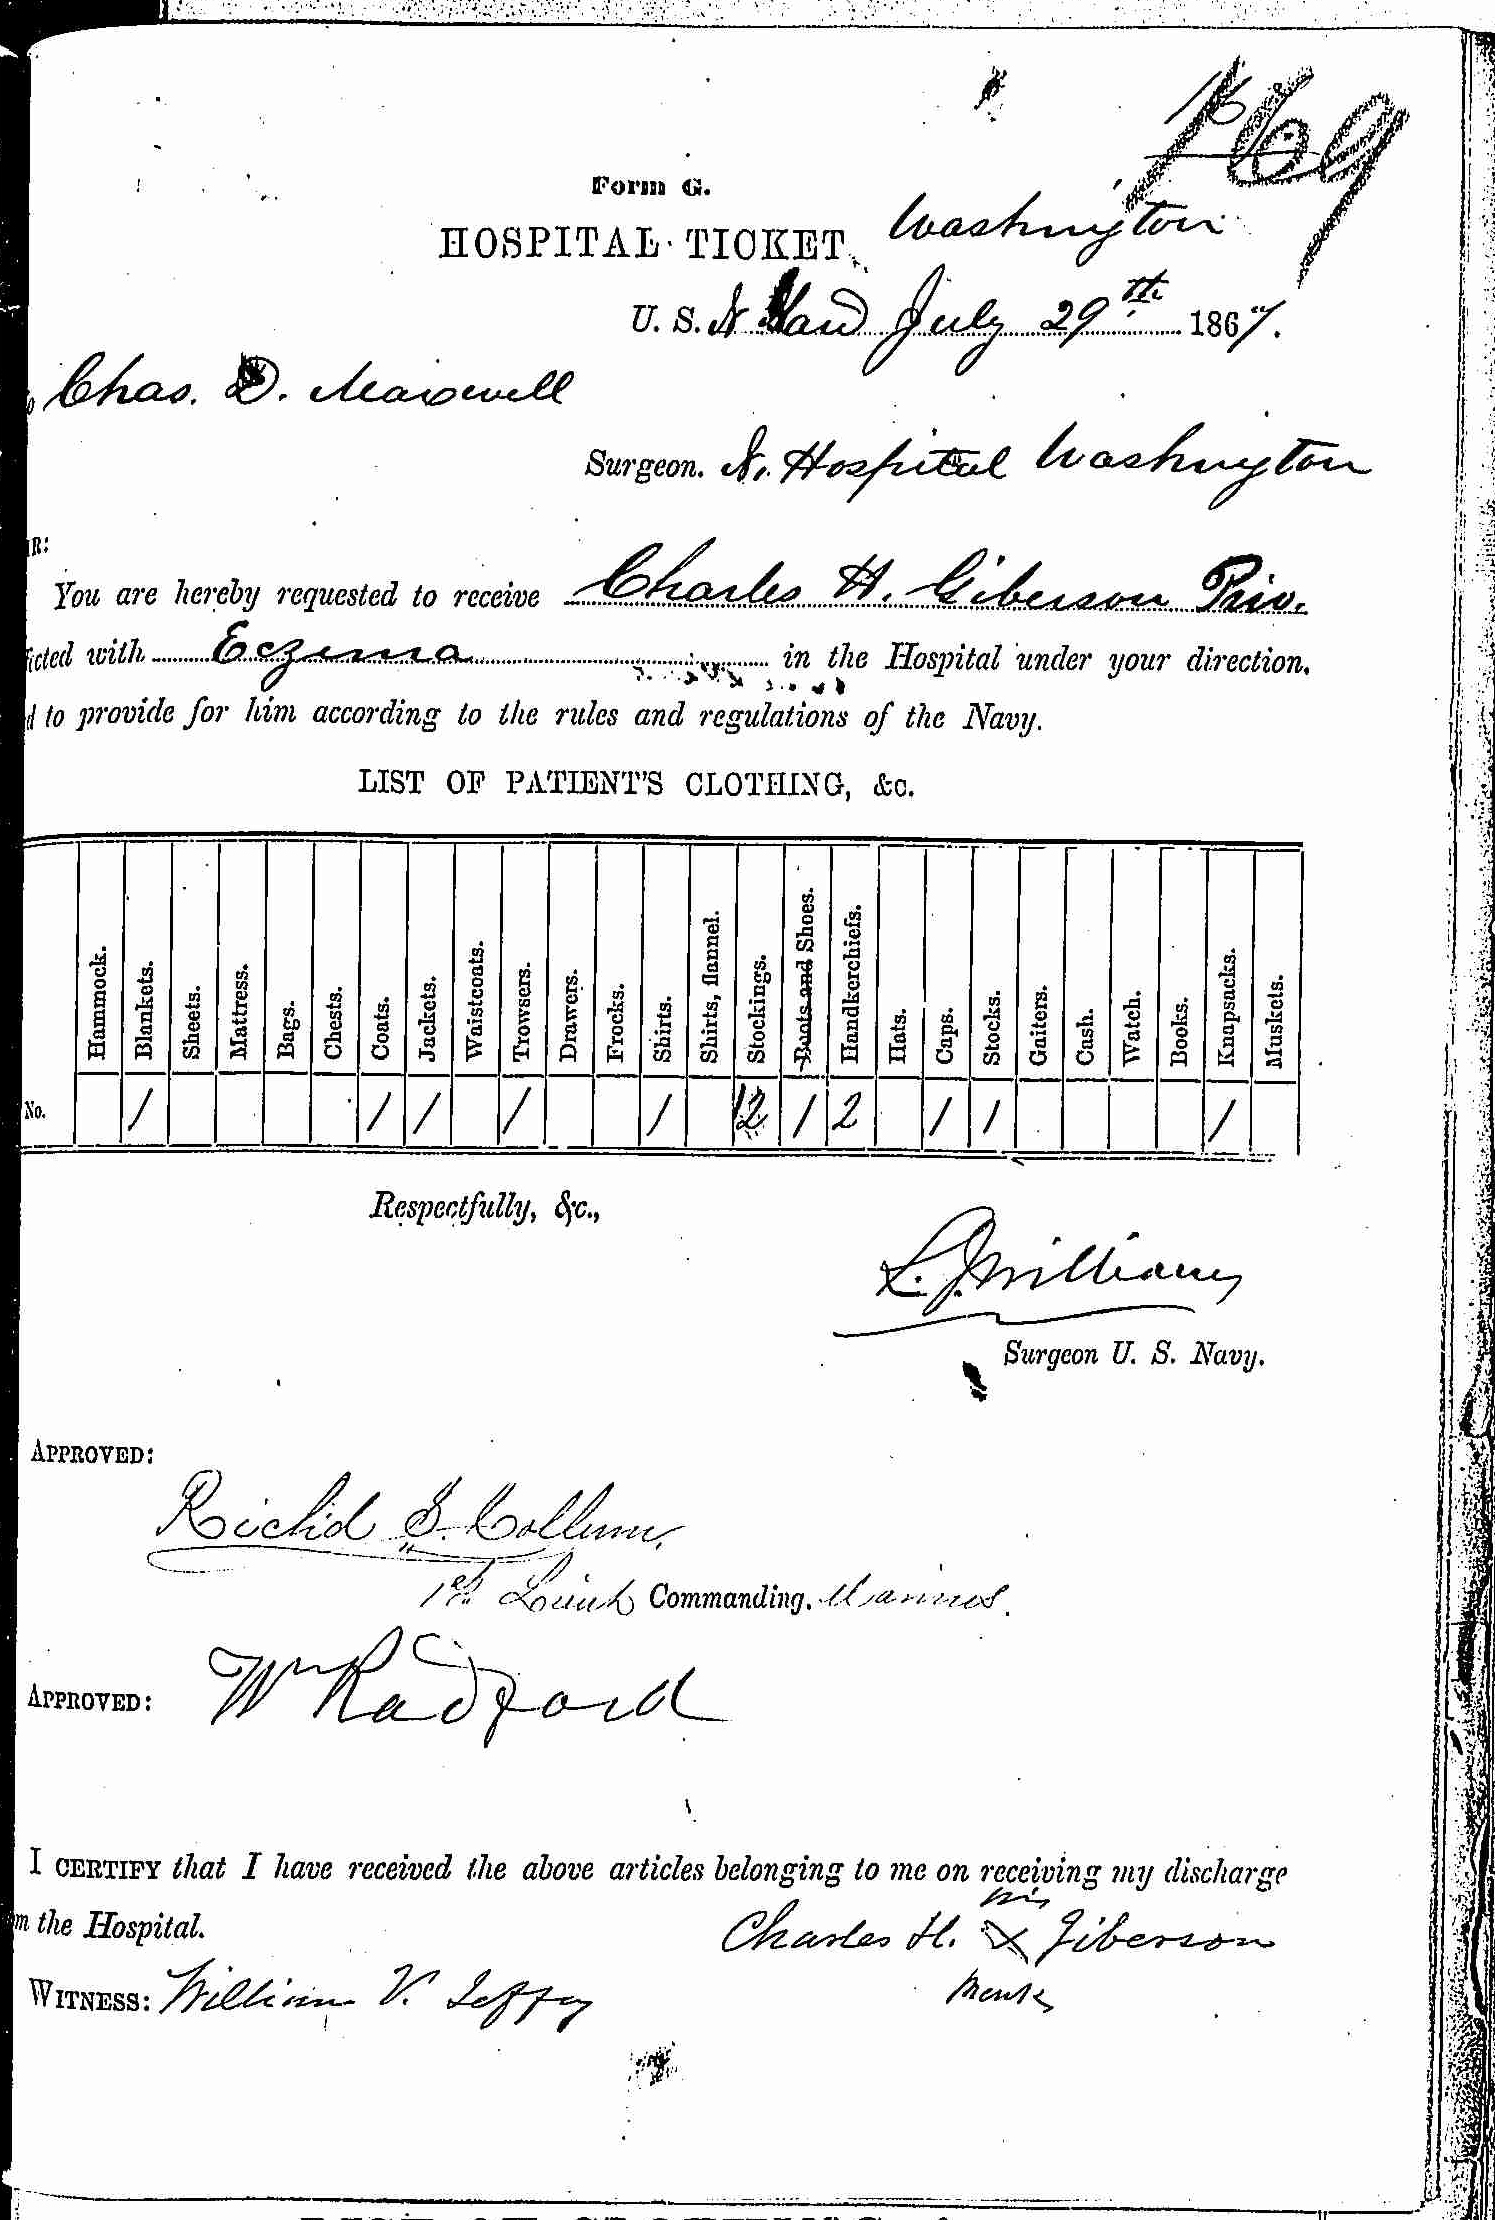 Entry for Charles H. Giberson (second admission page 1 of 2) in the log Hospital Tickets and Case Papers - Naval Hospital - Washington, D.C. - 1866-68